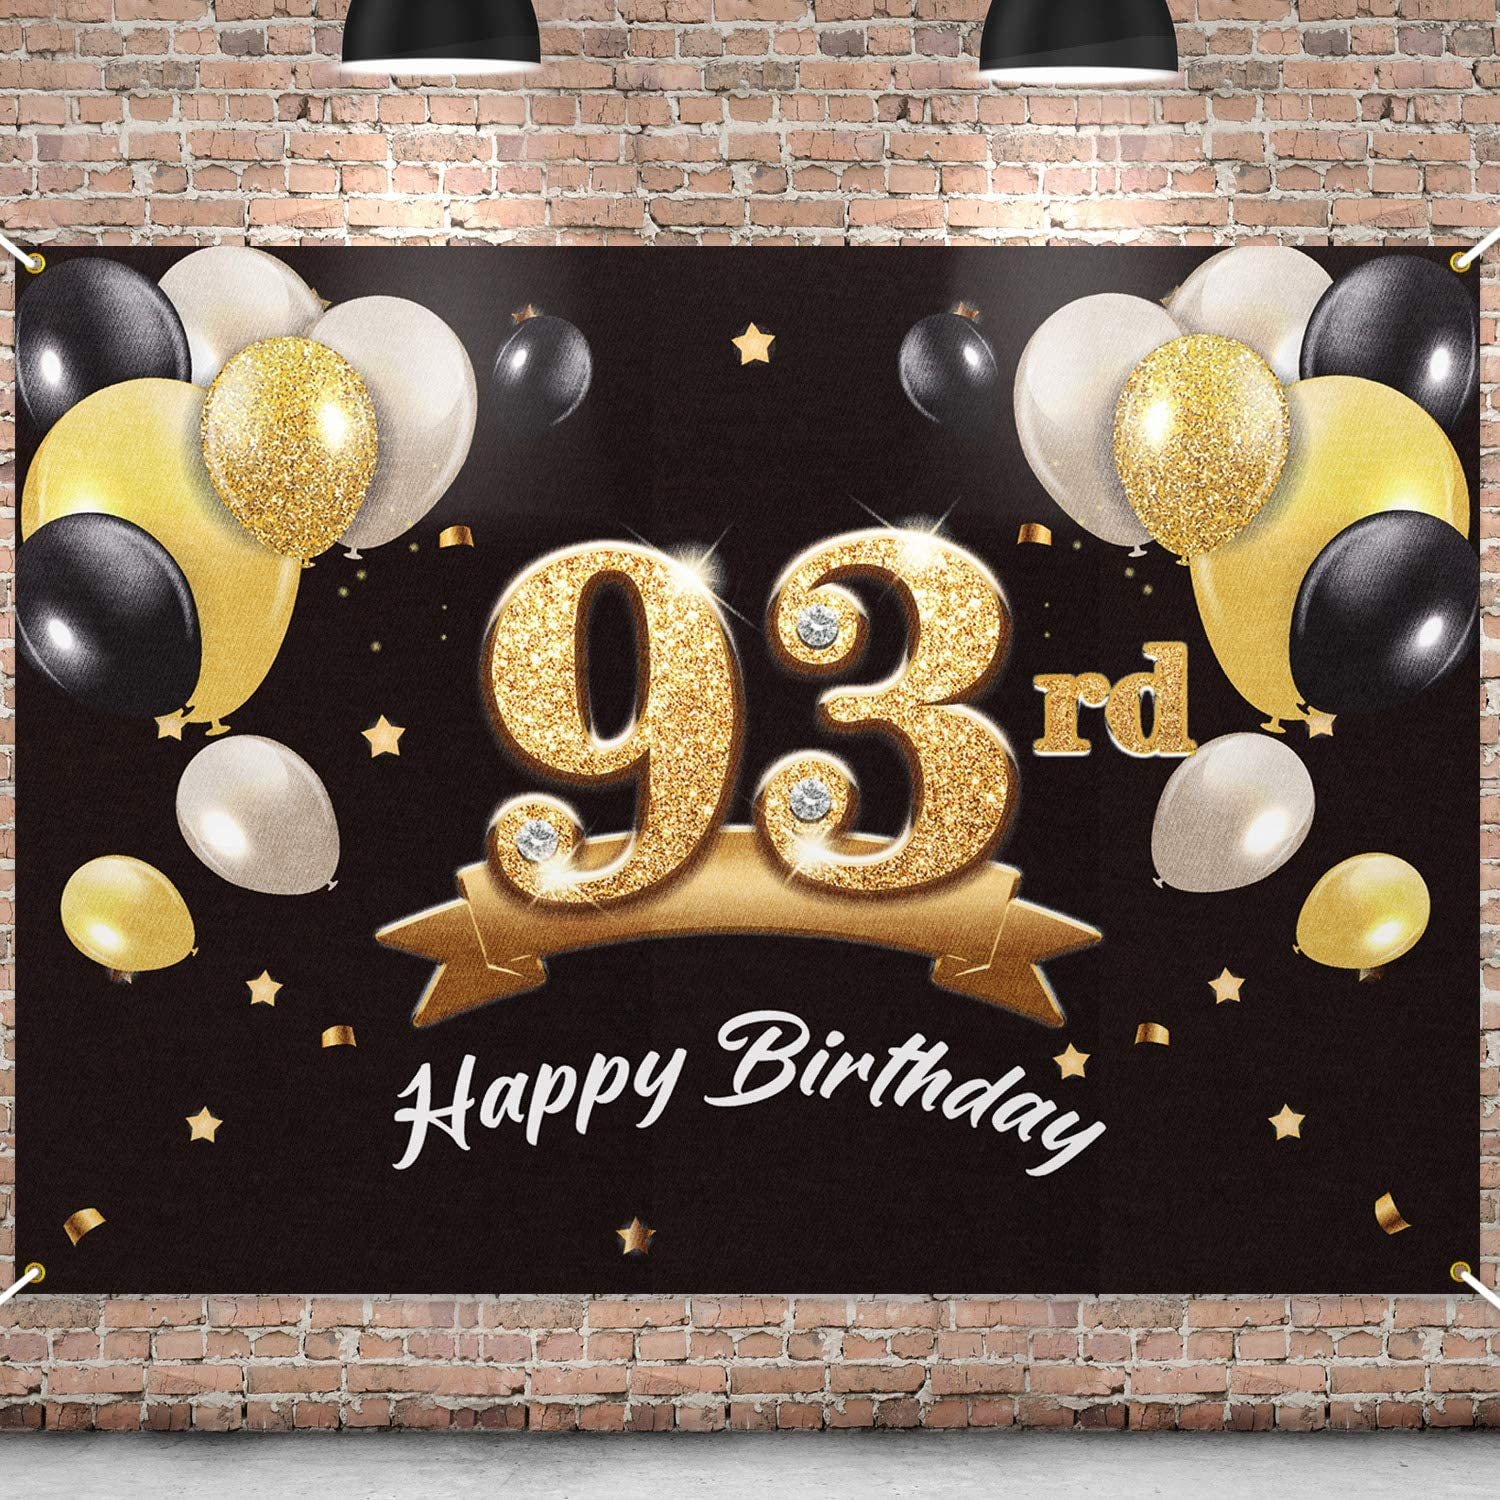 PAKBOOM New product! New type Happy 93rd Birthday Banner 93 Excellent Party - Backdrop